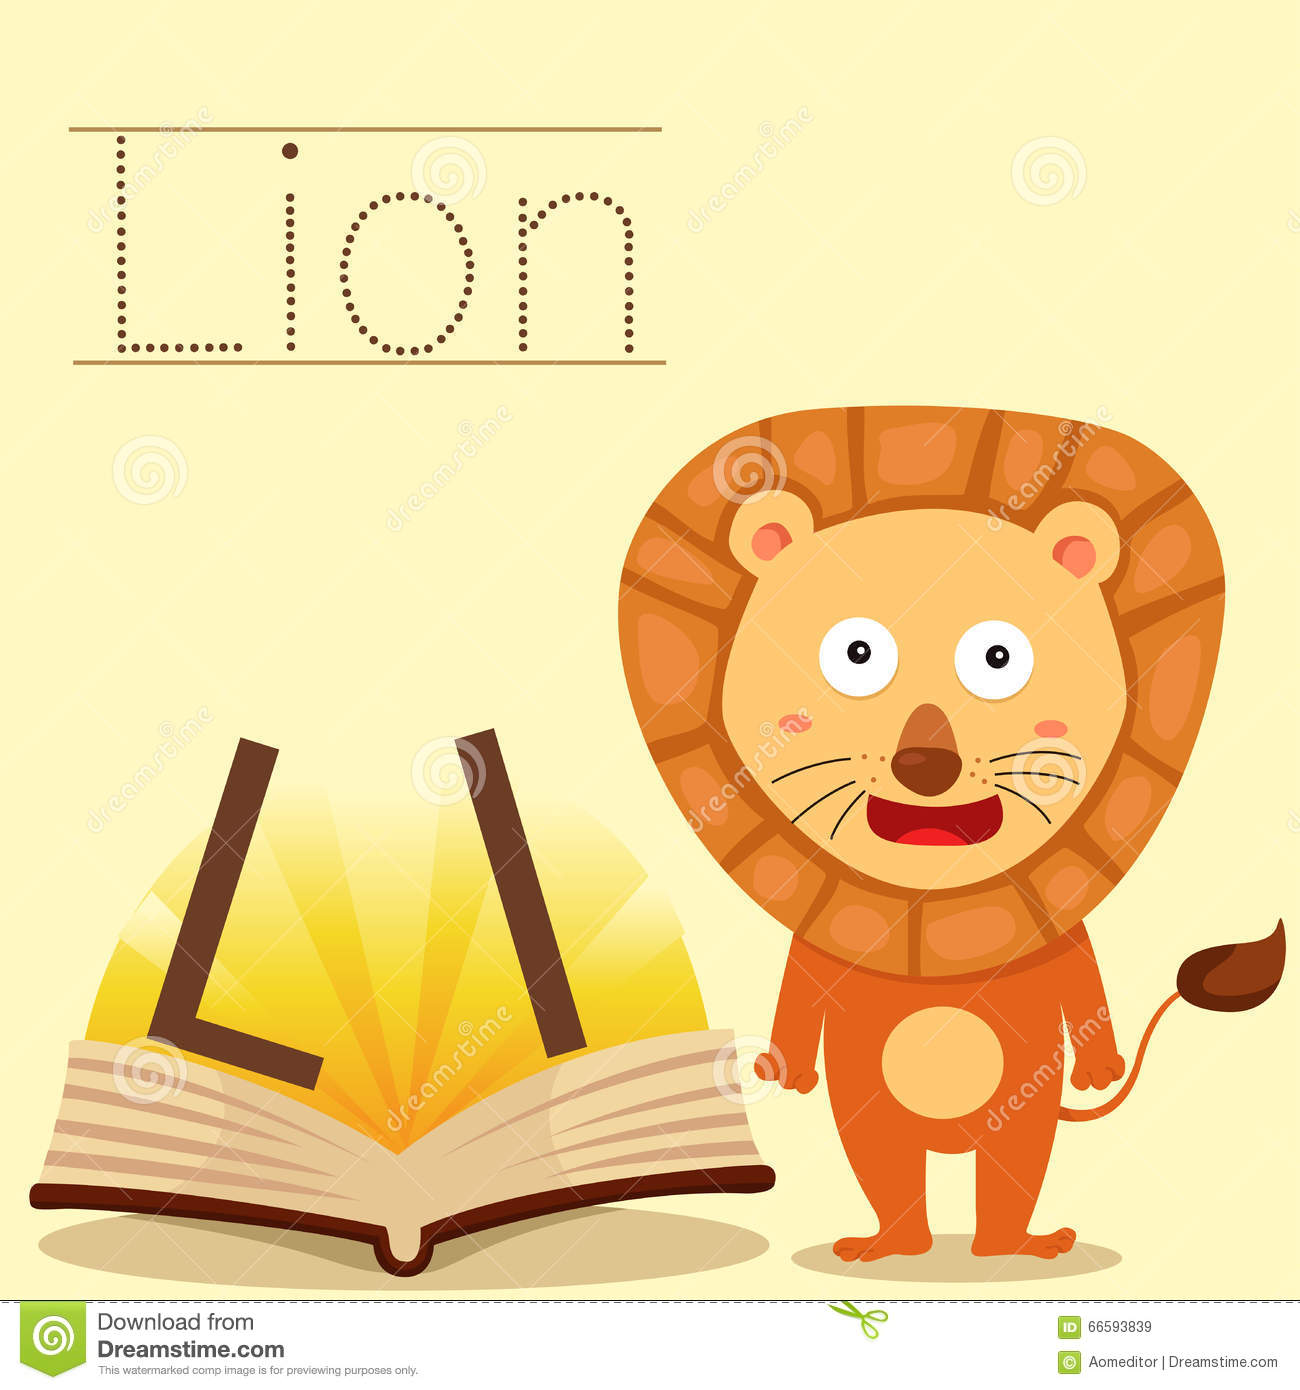 Illustrator Of L For Lion Bee Vocabulary Stock Vector